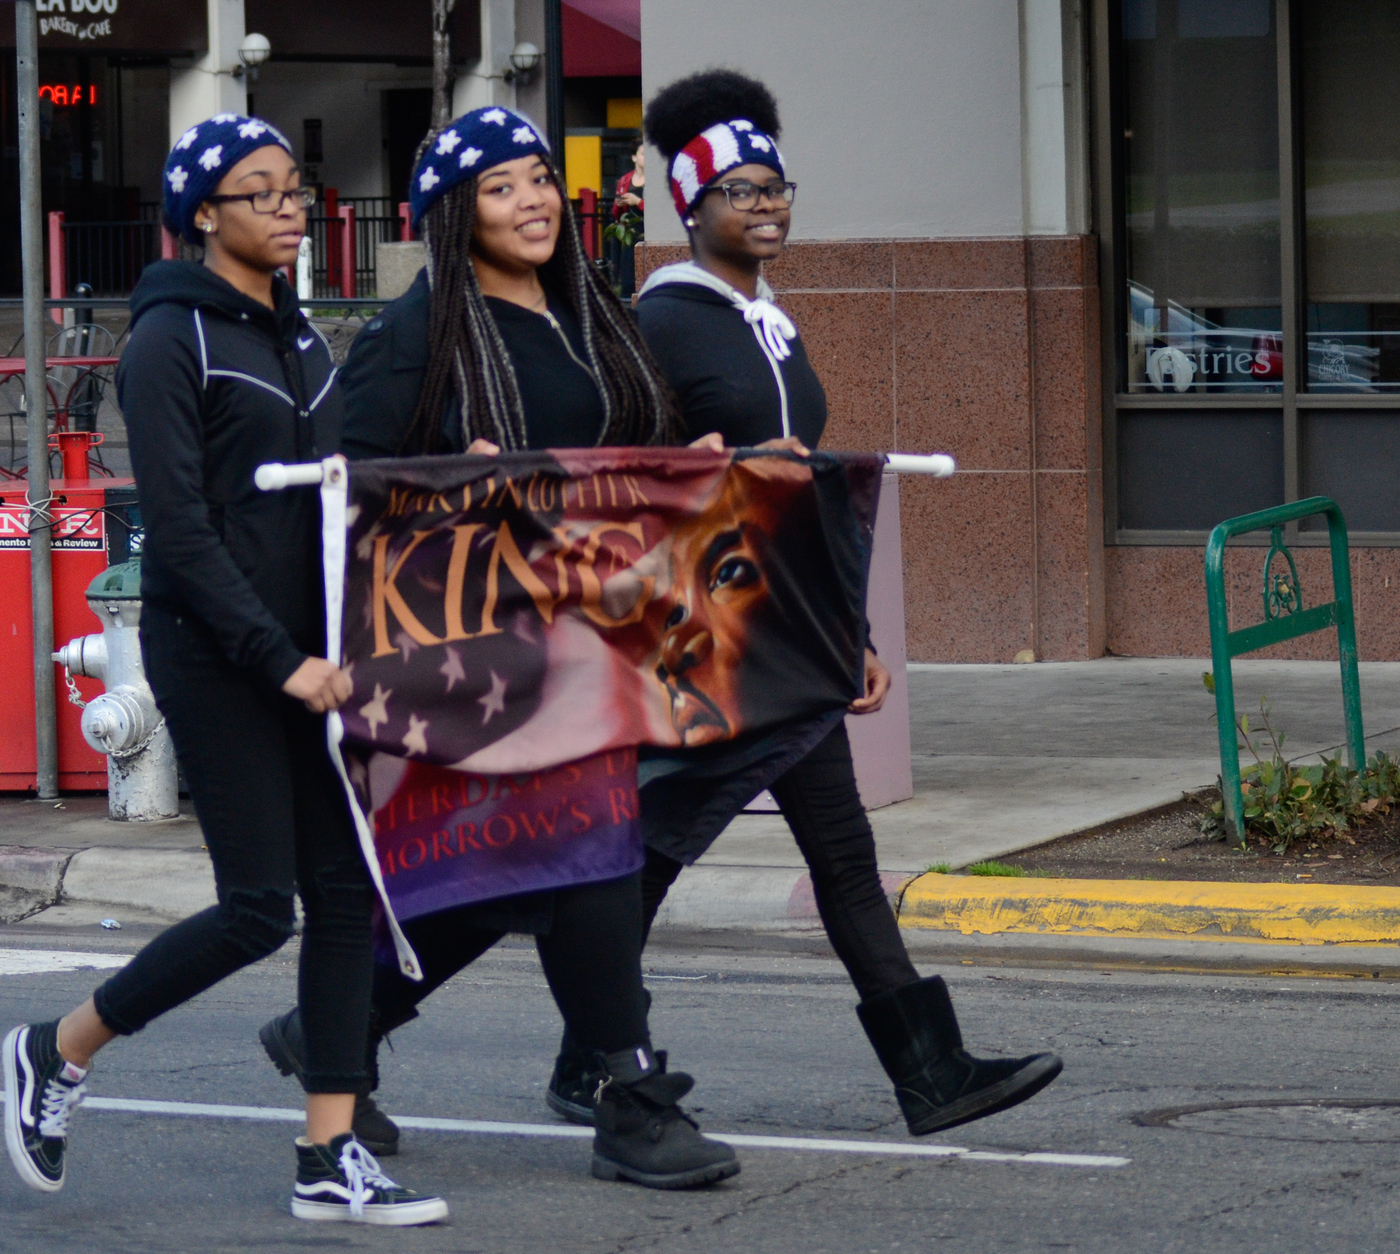 MLK March 1-18-16 Downtown  Sacramento, CA. A group of young women participants walks in the MLK  March holding a banner with an image of Dr. Martin Luther King, Jr. They are heading towards the Sacramento Convention Center   Chris Williams, Staff Photographer. | Chriswexpress@gmail.com